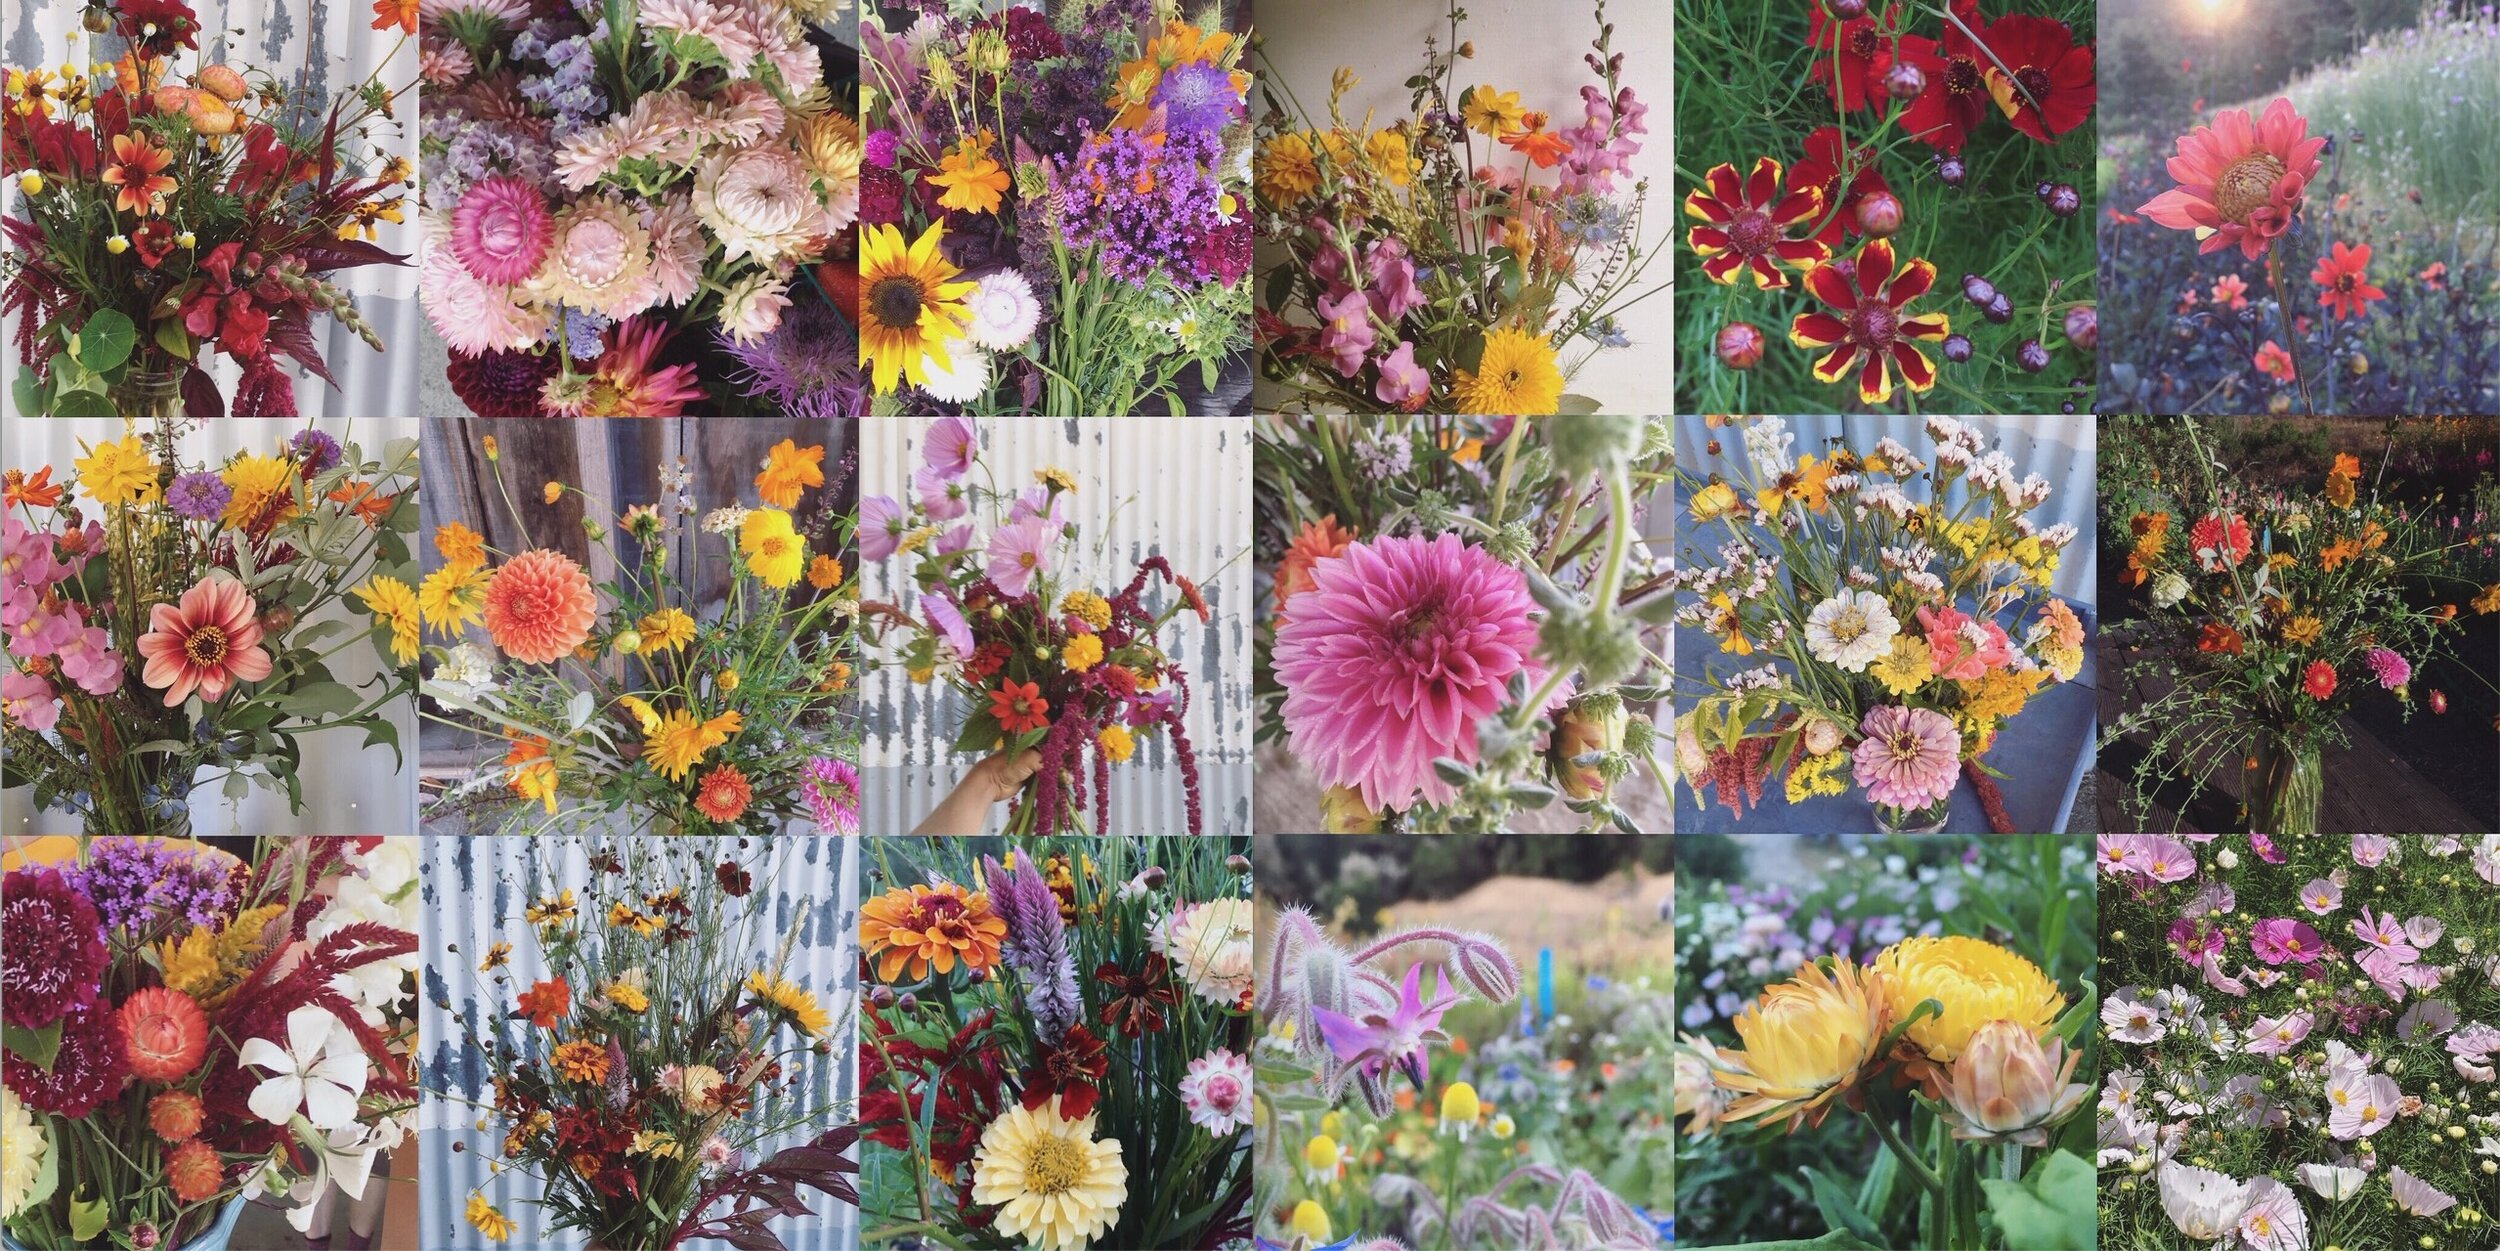 Looking back on a fabulous summer of flowers!